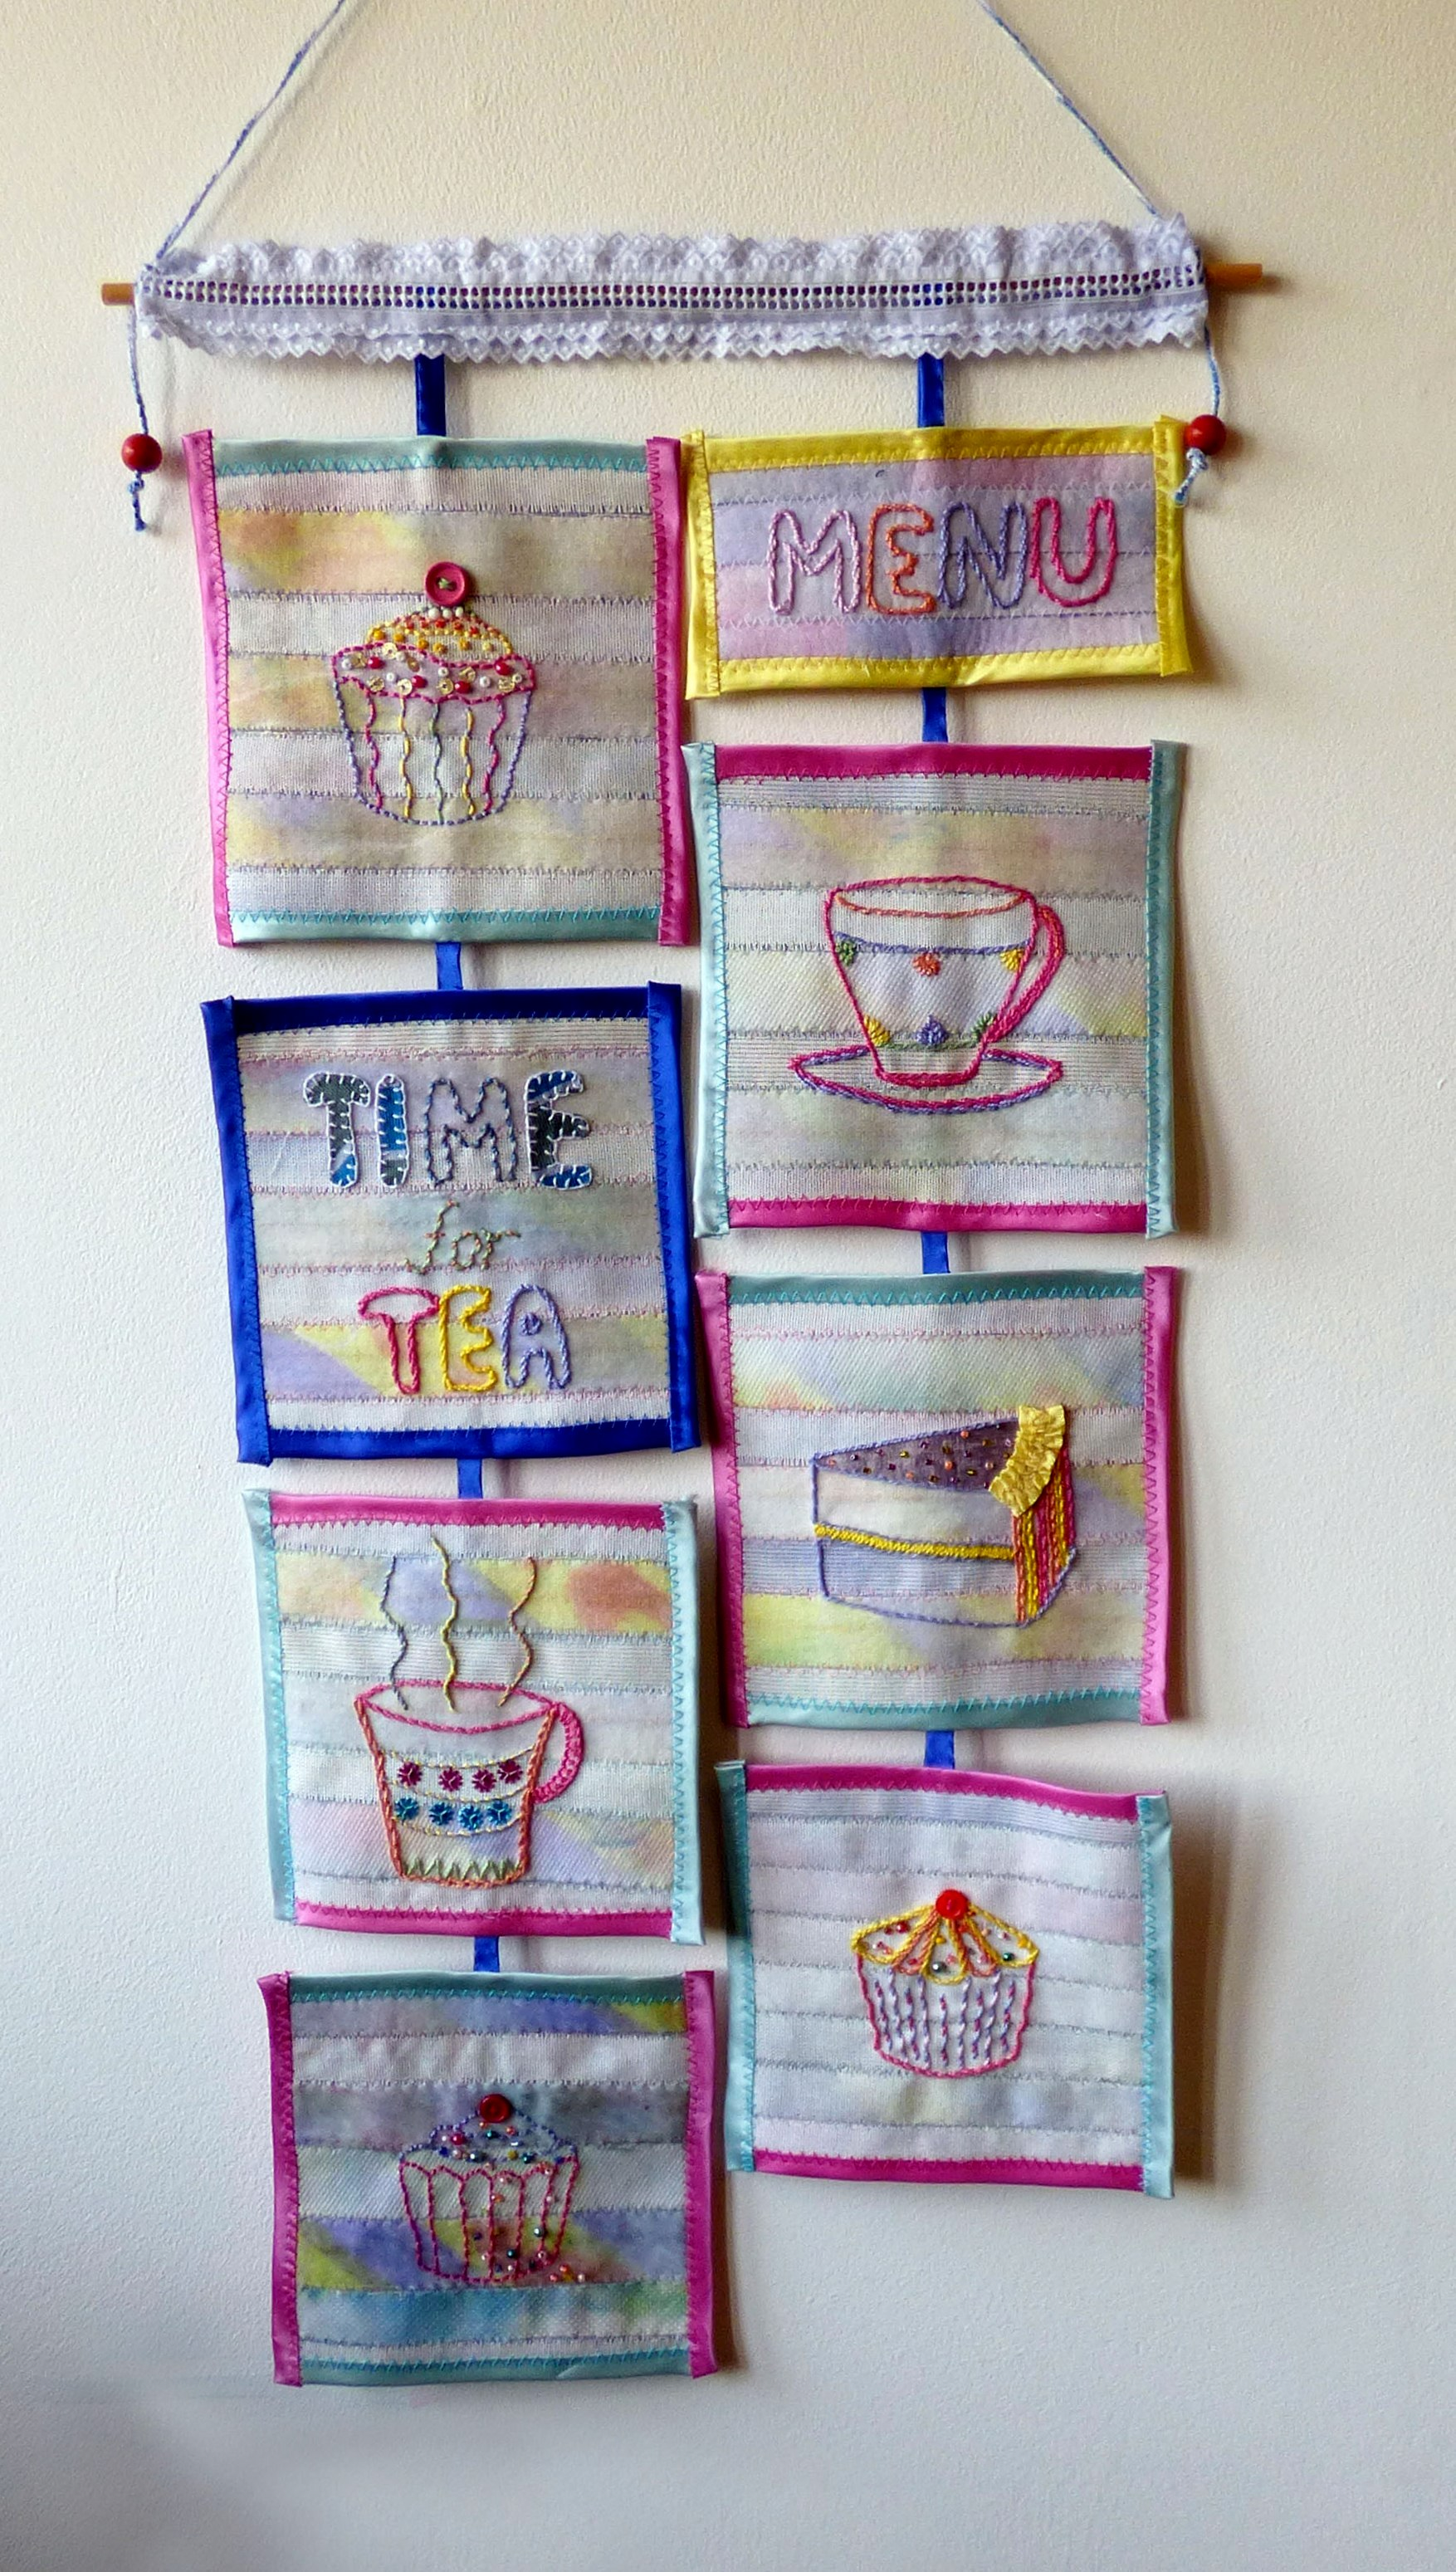 TIME FOR TEA, Manchester Megastitchers group work 2013, using tie linings as background fabric